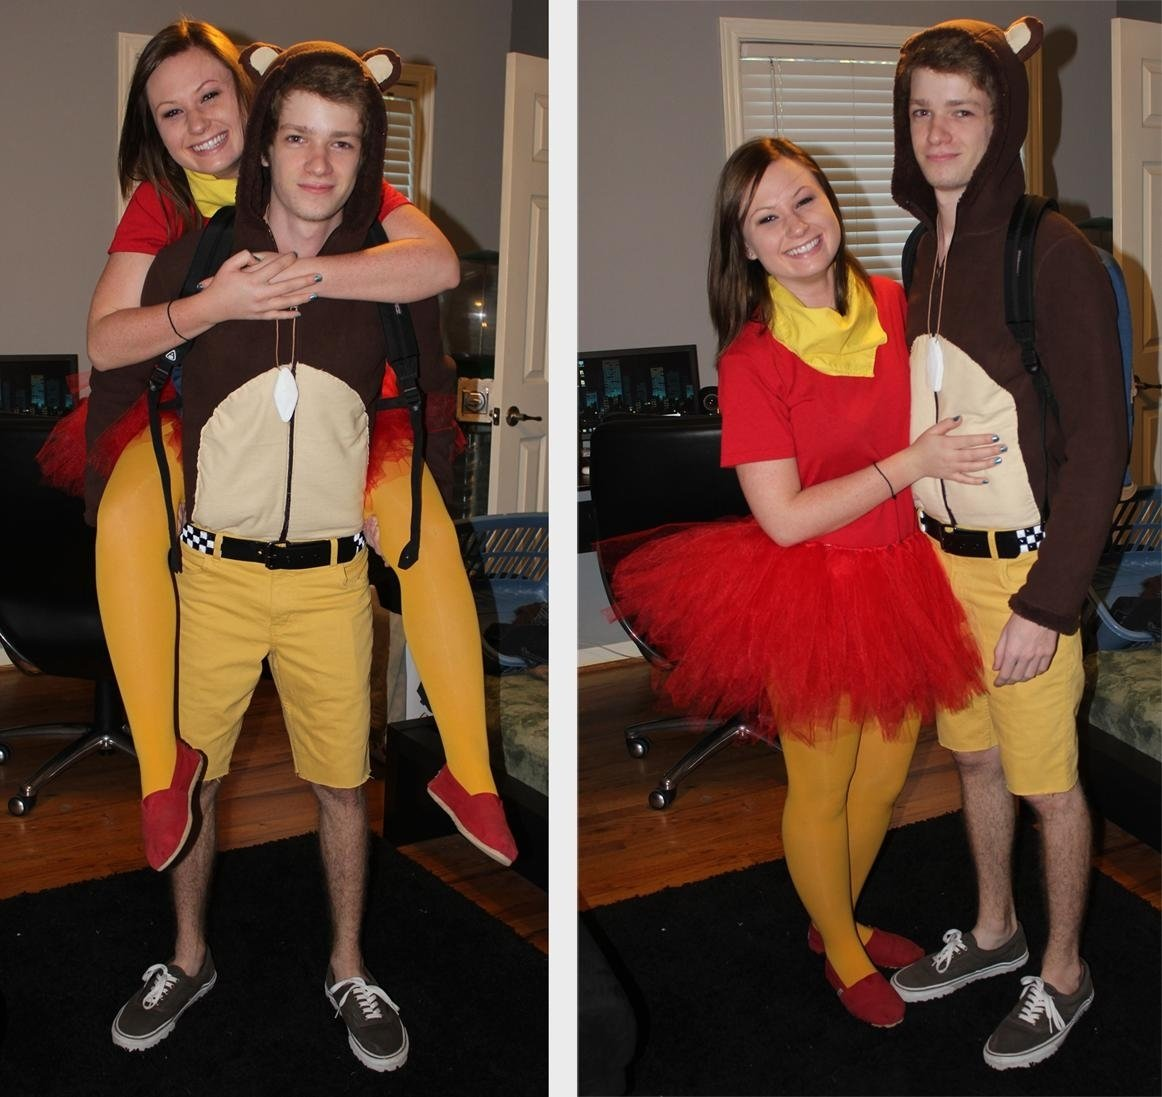 10 Nice Cute Couple Ideas For Halloween my girlfriend wanted to do a couple costume for halloween this year